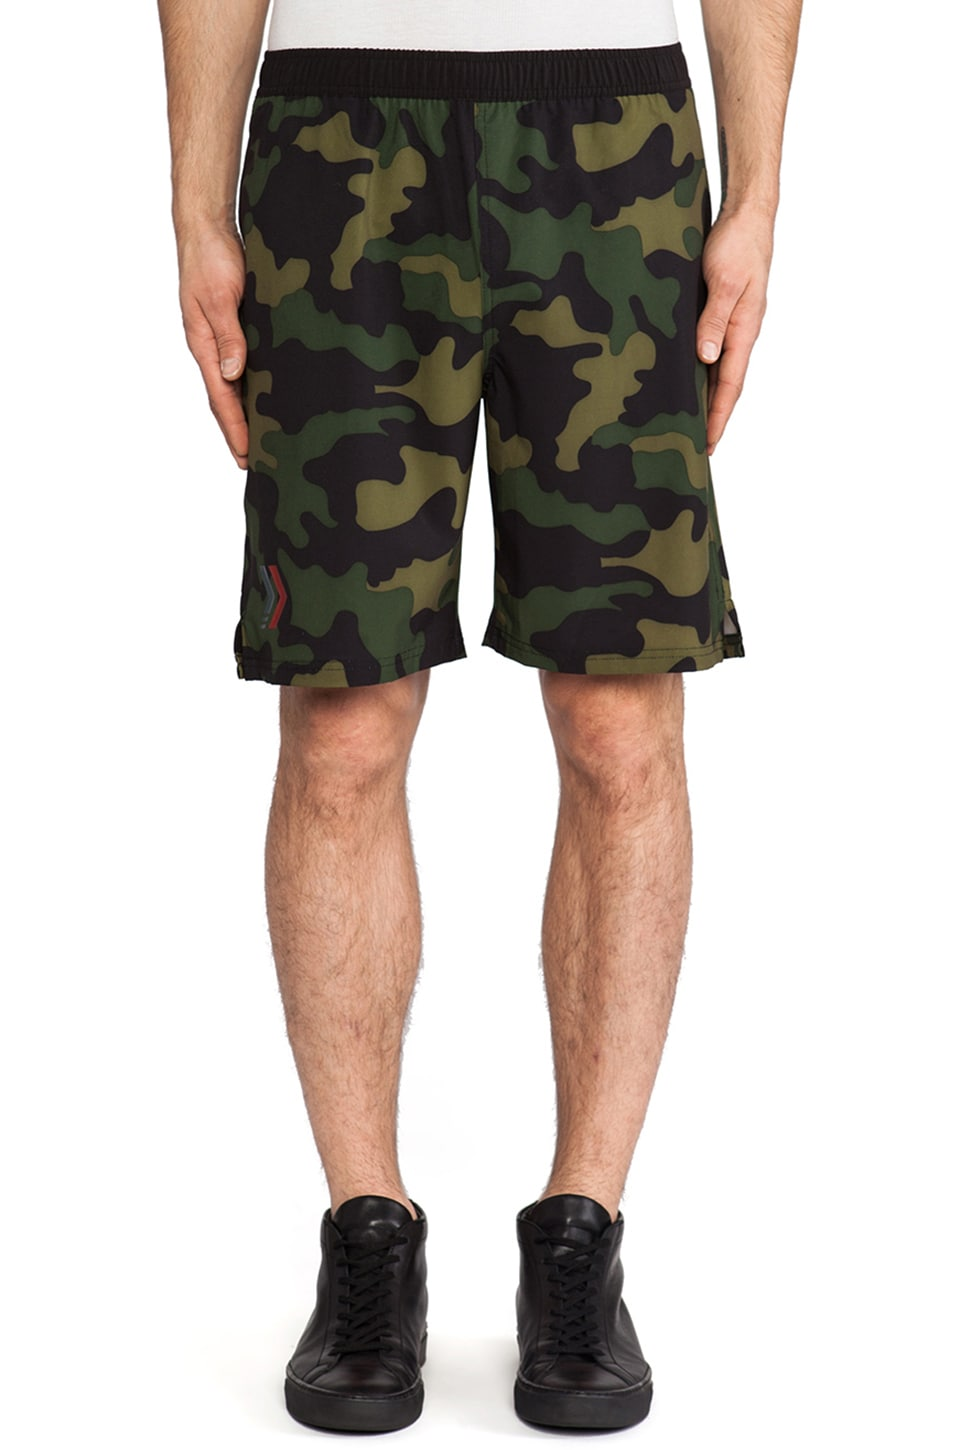 Athletic Recon Firebolt Shorts in Camo